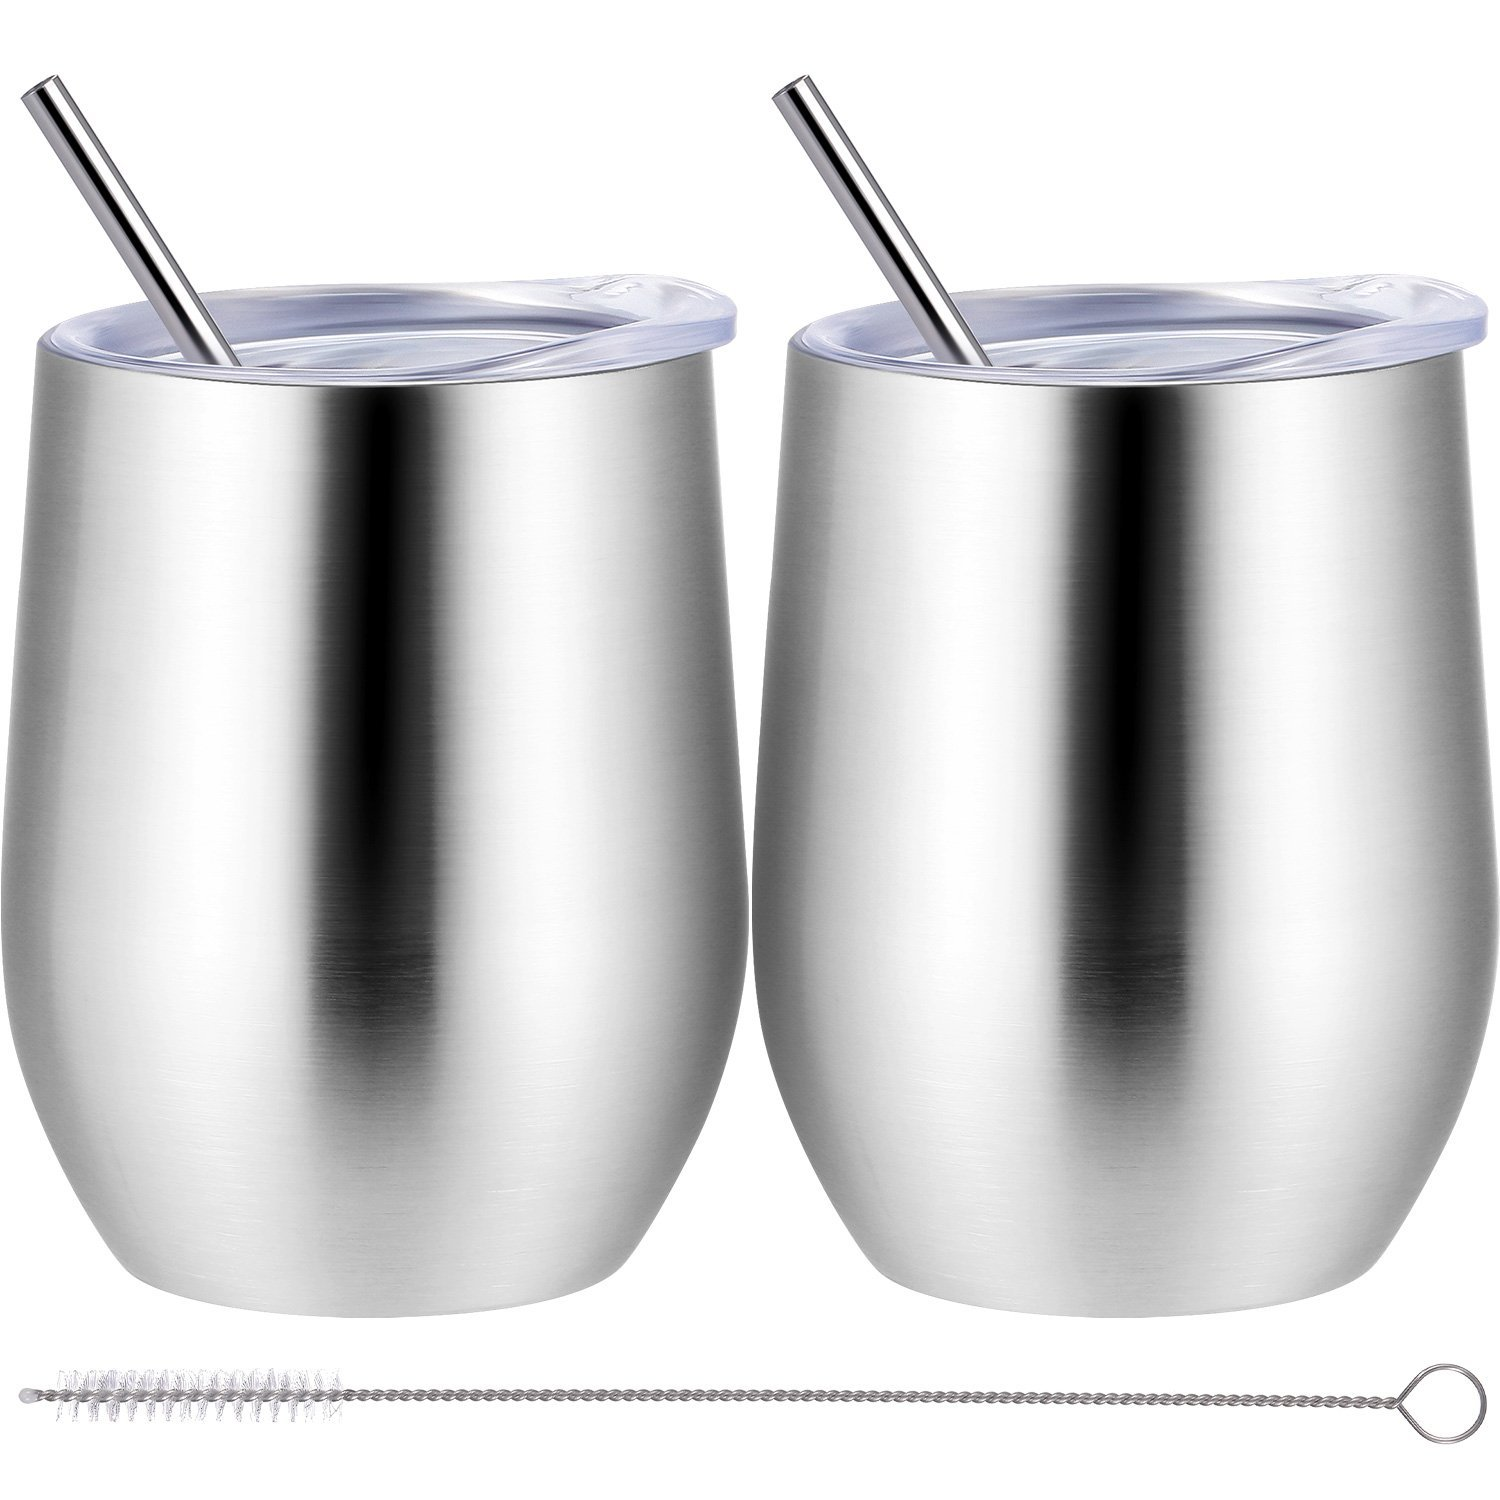 Skylety 12 oz Double-insulated Wine Tumbler, Stainless Steel Tumbler Cup with Lids and Straws for Wine, Coffee, Drinks, Champagne, Cocktails, 2 Sets (Silver)